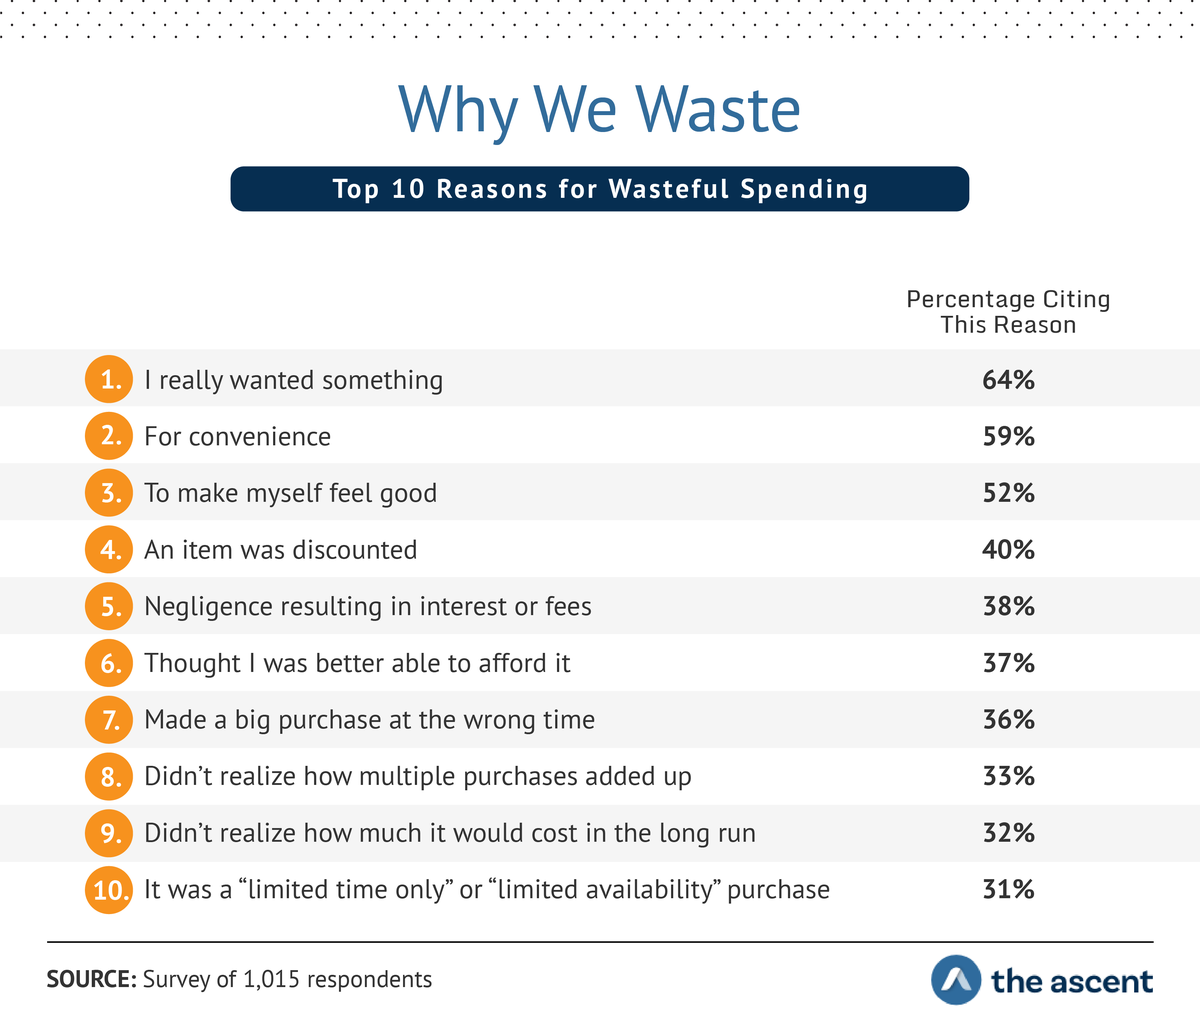 "Why We Waste: Top 10 Reasons for Wasteful Spending...I really wanted something	64% For convenience	59% To make myself feel good	52% An item was discounted	40% Negligence resulting in interest or fees	38% Thought I was better able to afford it	37% Made a big purchase at the wrong time	36% Didn't realize how multiple purchases added up	33% Didn't realize how much it would cost in the long run	32% It was a ""limited time only"" or ""limited availability"" purchase	31%"